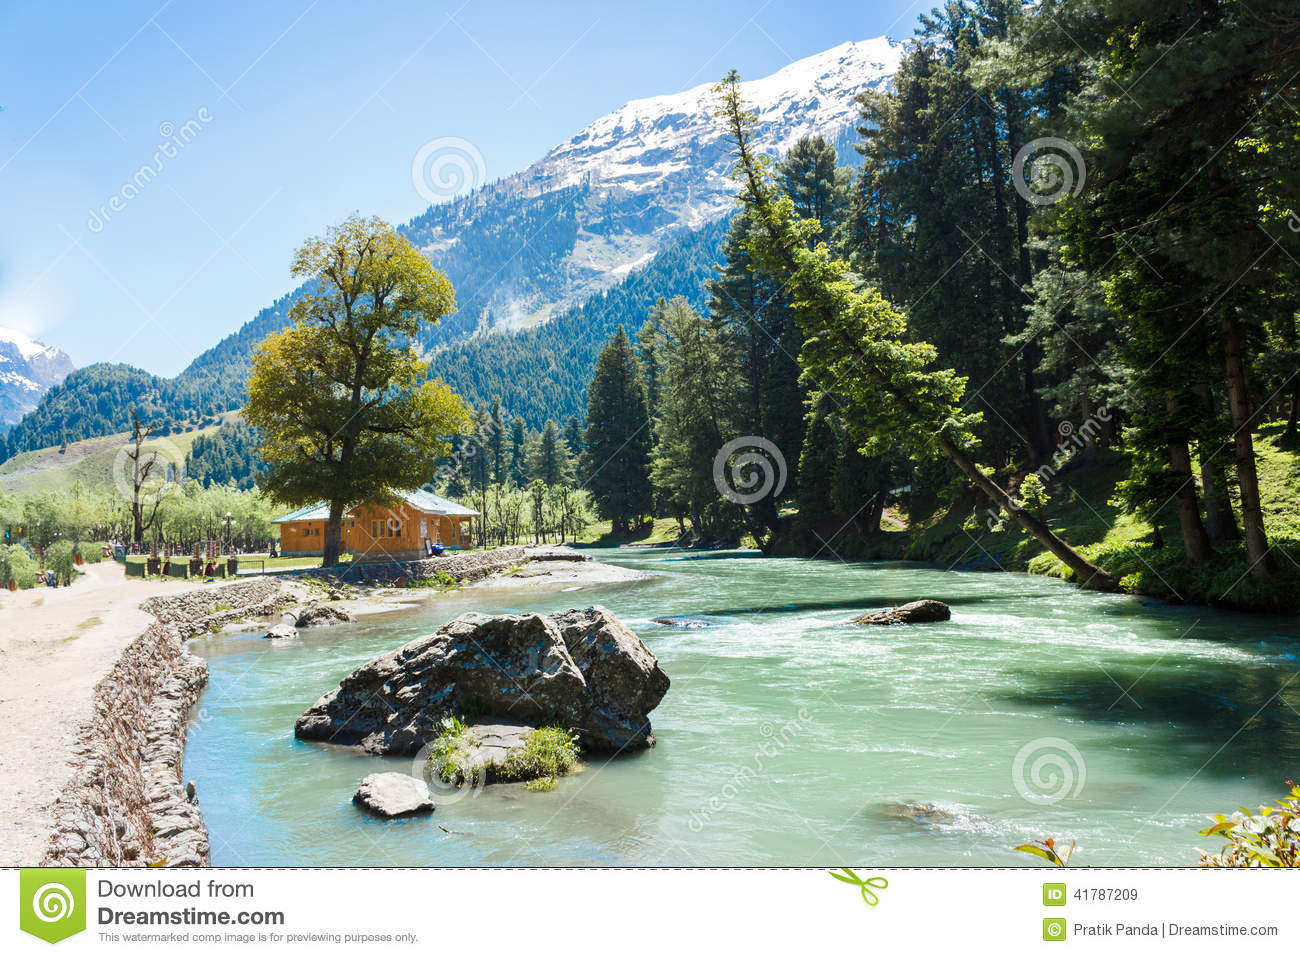 Betaab valley, Lidder river, beautiful Kashmir